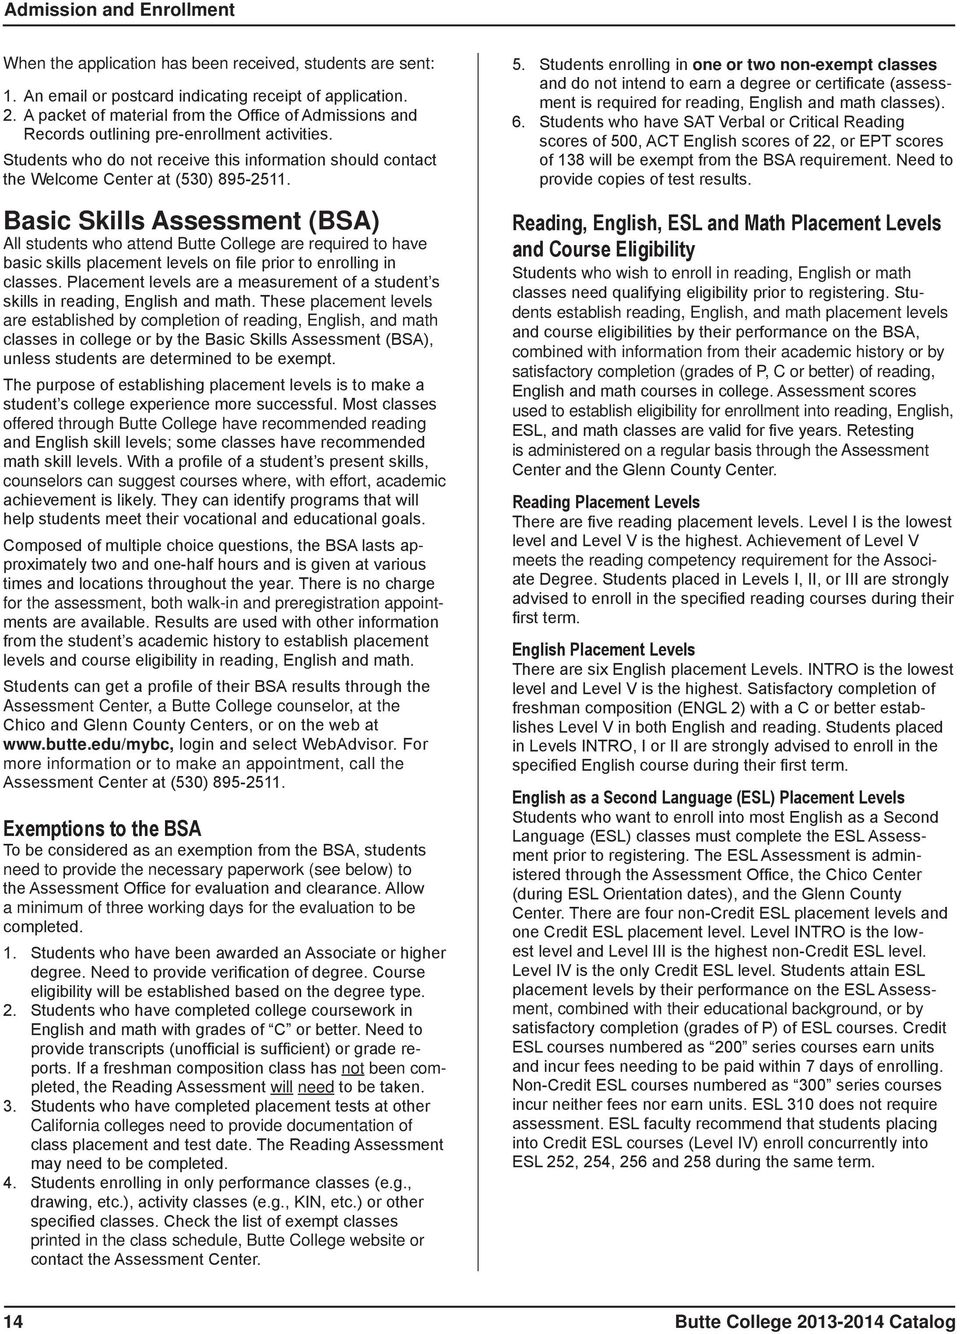 Basic Skills Assessment (BSA) All students who attend Butte College are required to have basic skills placement levels on file prior to enrolling in classes.